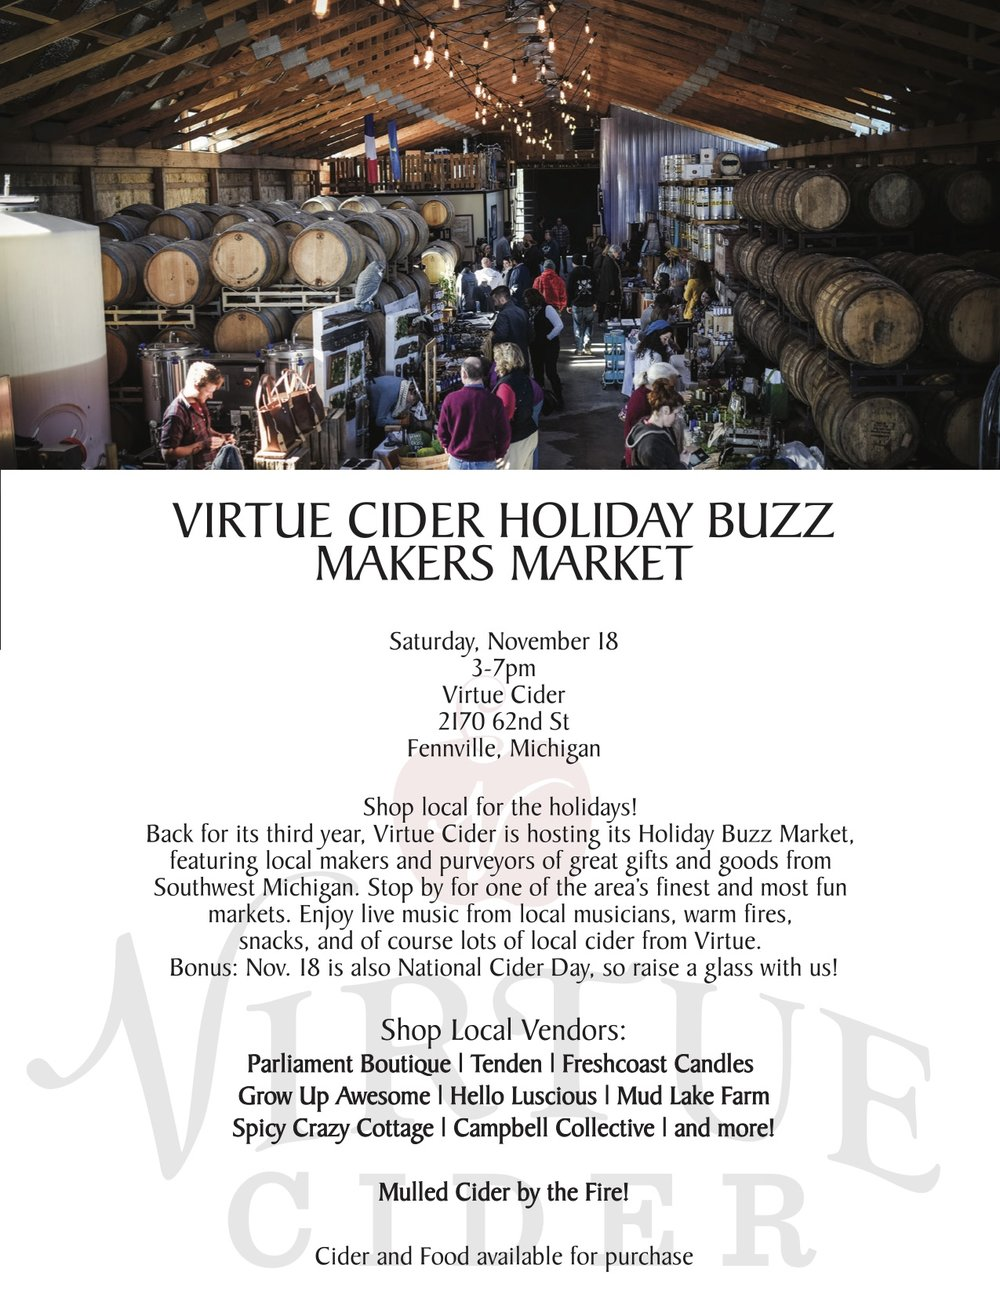 Holiday Buzz Market flyer 2017.jpg